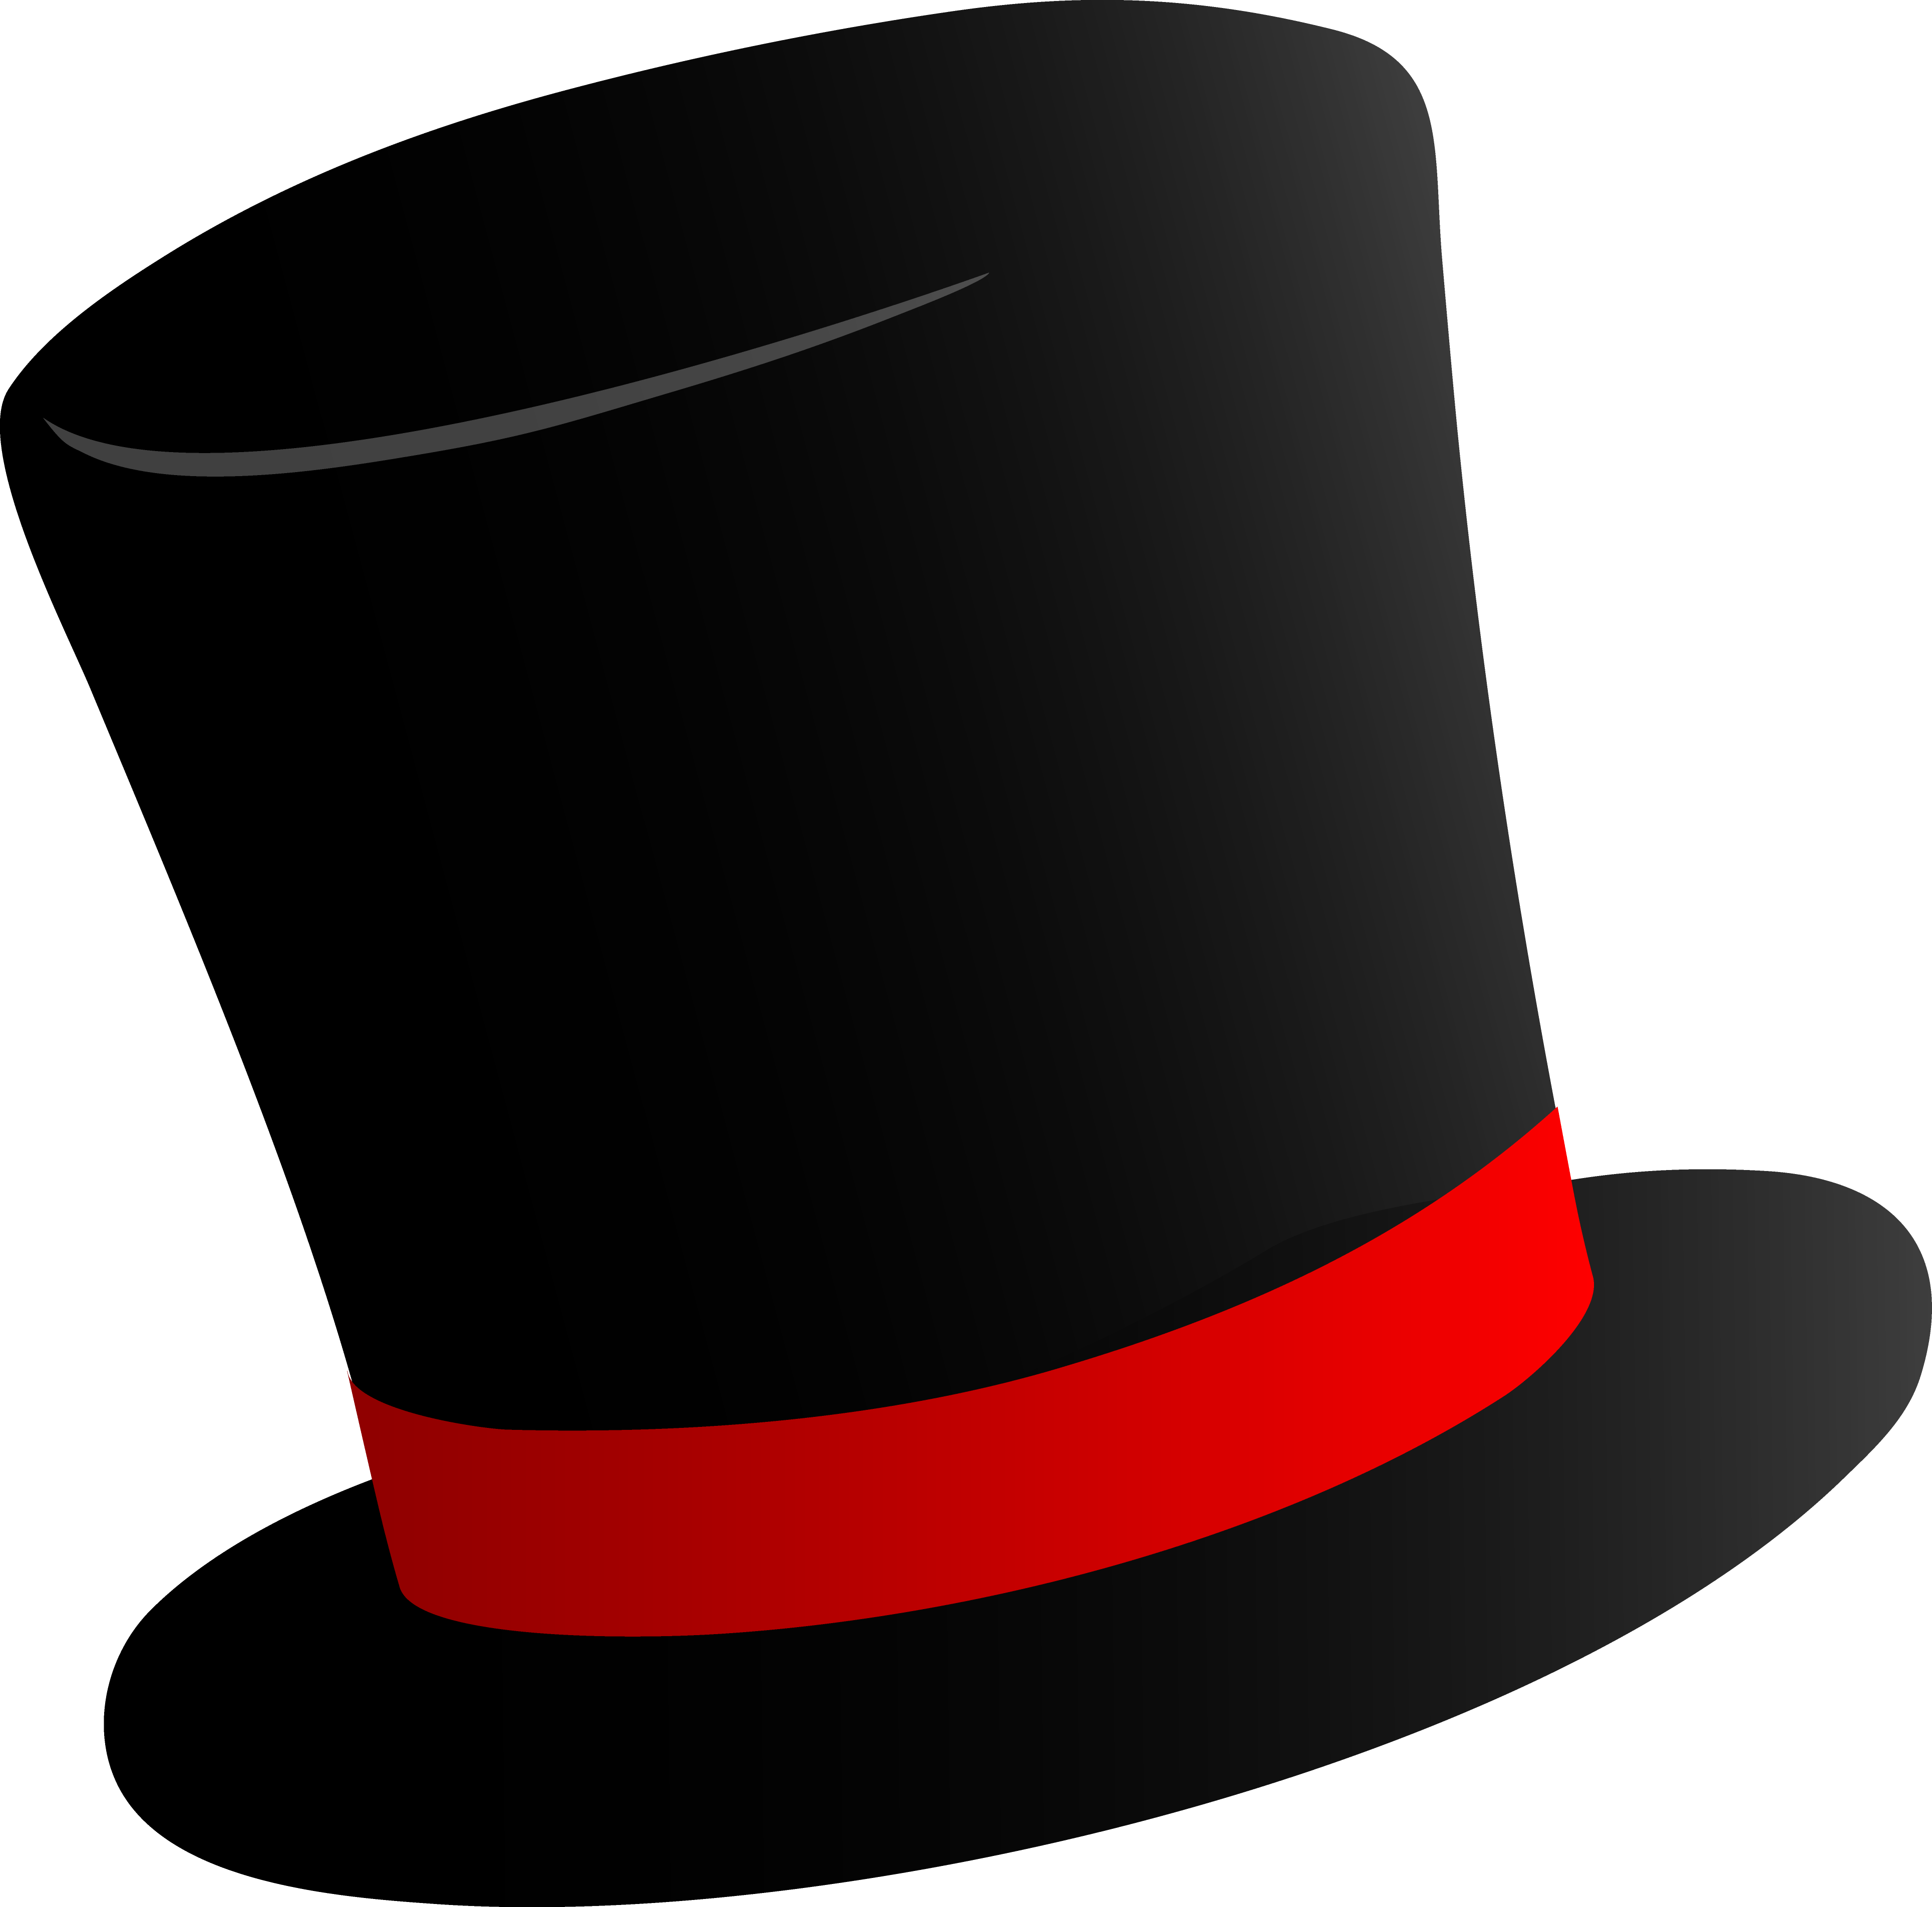 Funny hat png. Get any kind of